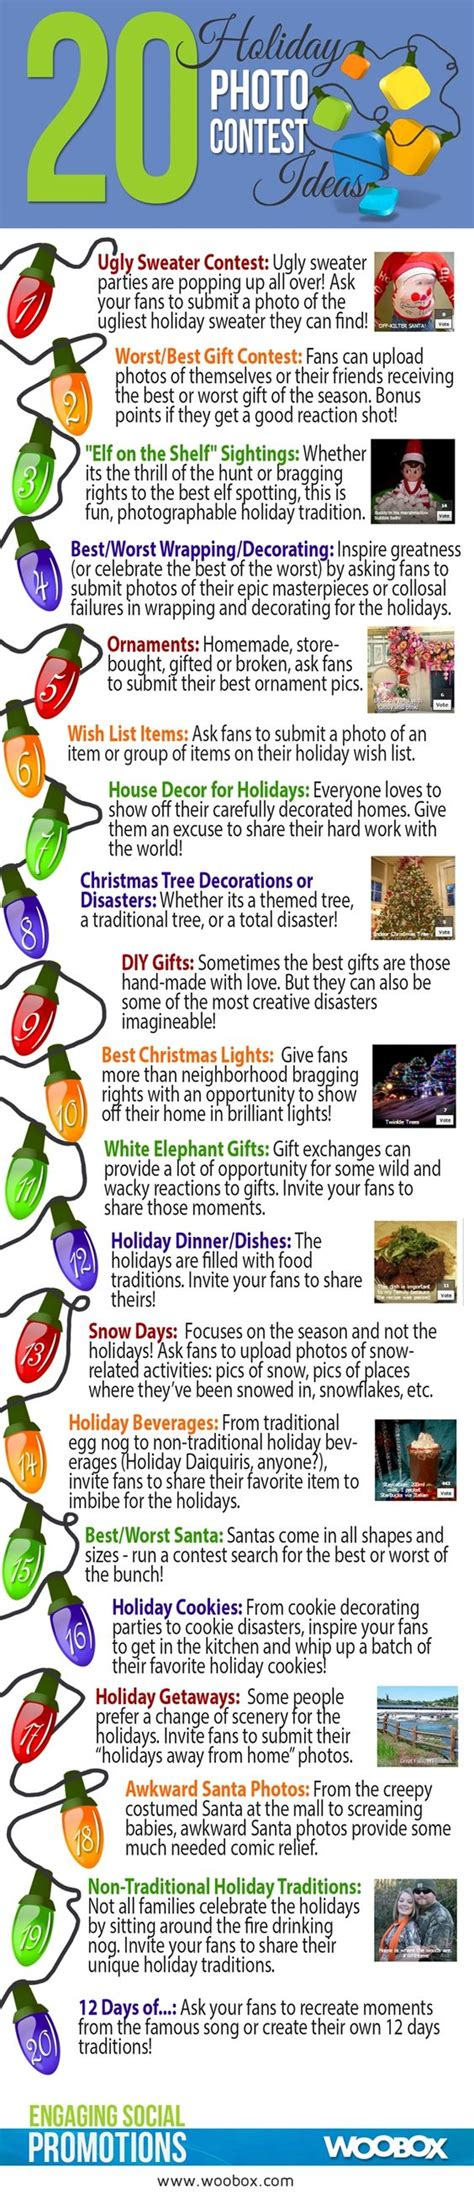 Photography Giveaway Ideas On Facebook - infographic 20 facebook holiday photo contests allfacebook holiday email